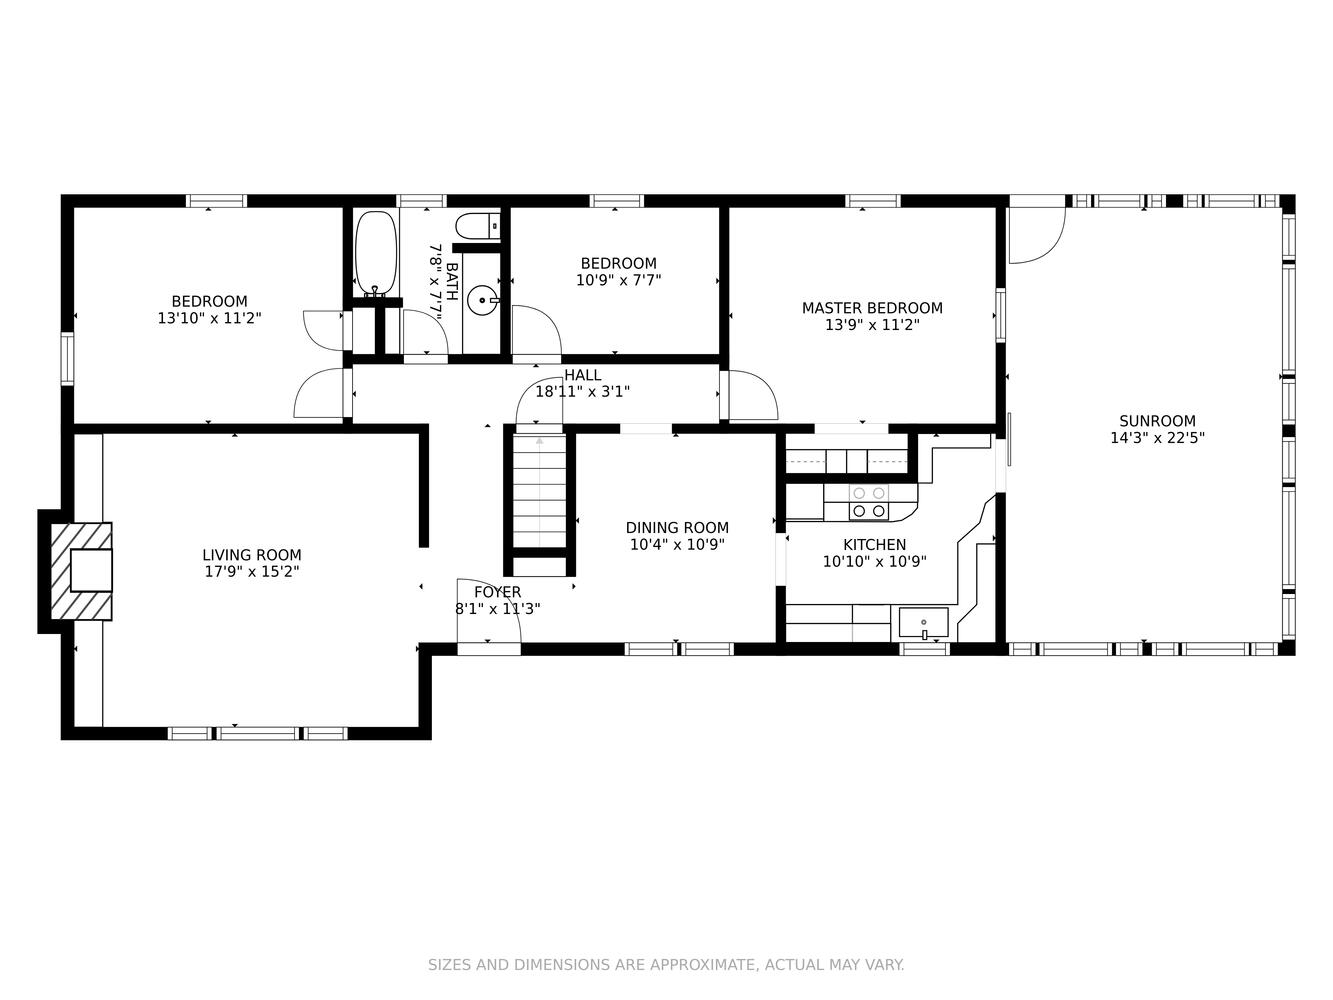 Slide Show and Virtual Floor Plan